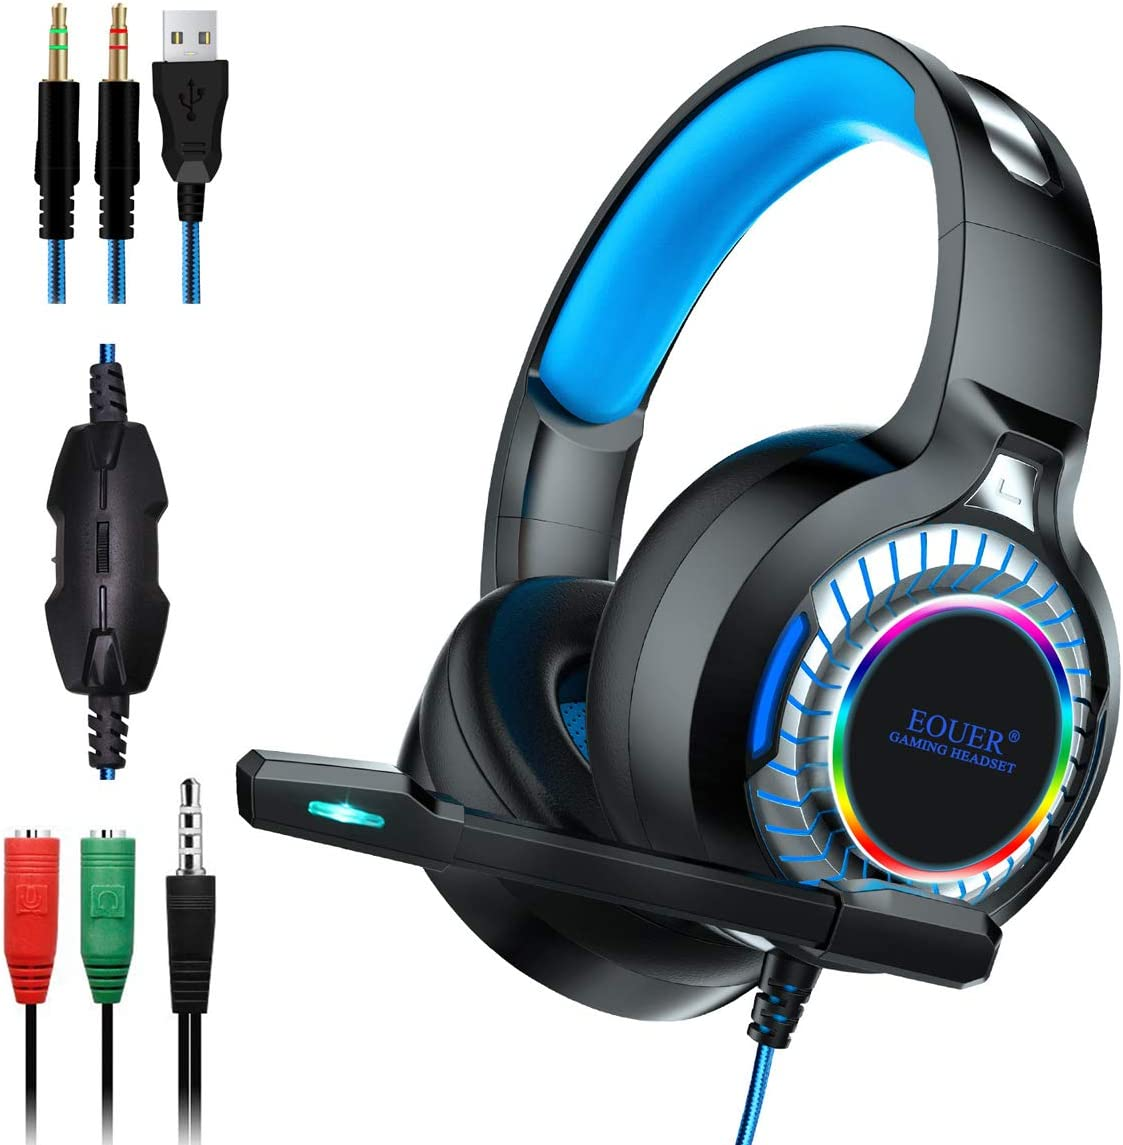 Stereo PC Gaming Headset with Noise Cancelling Microphone,Surround Sound Headphone with LED Light Intense Bass for Computer,Laptop, Mac